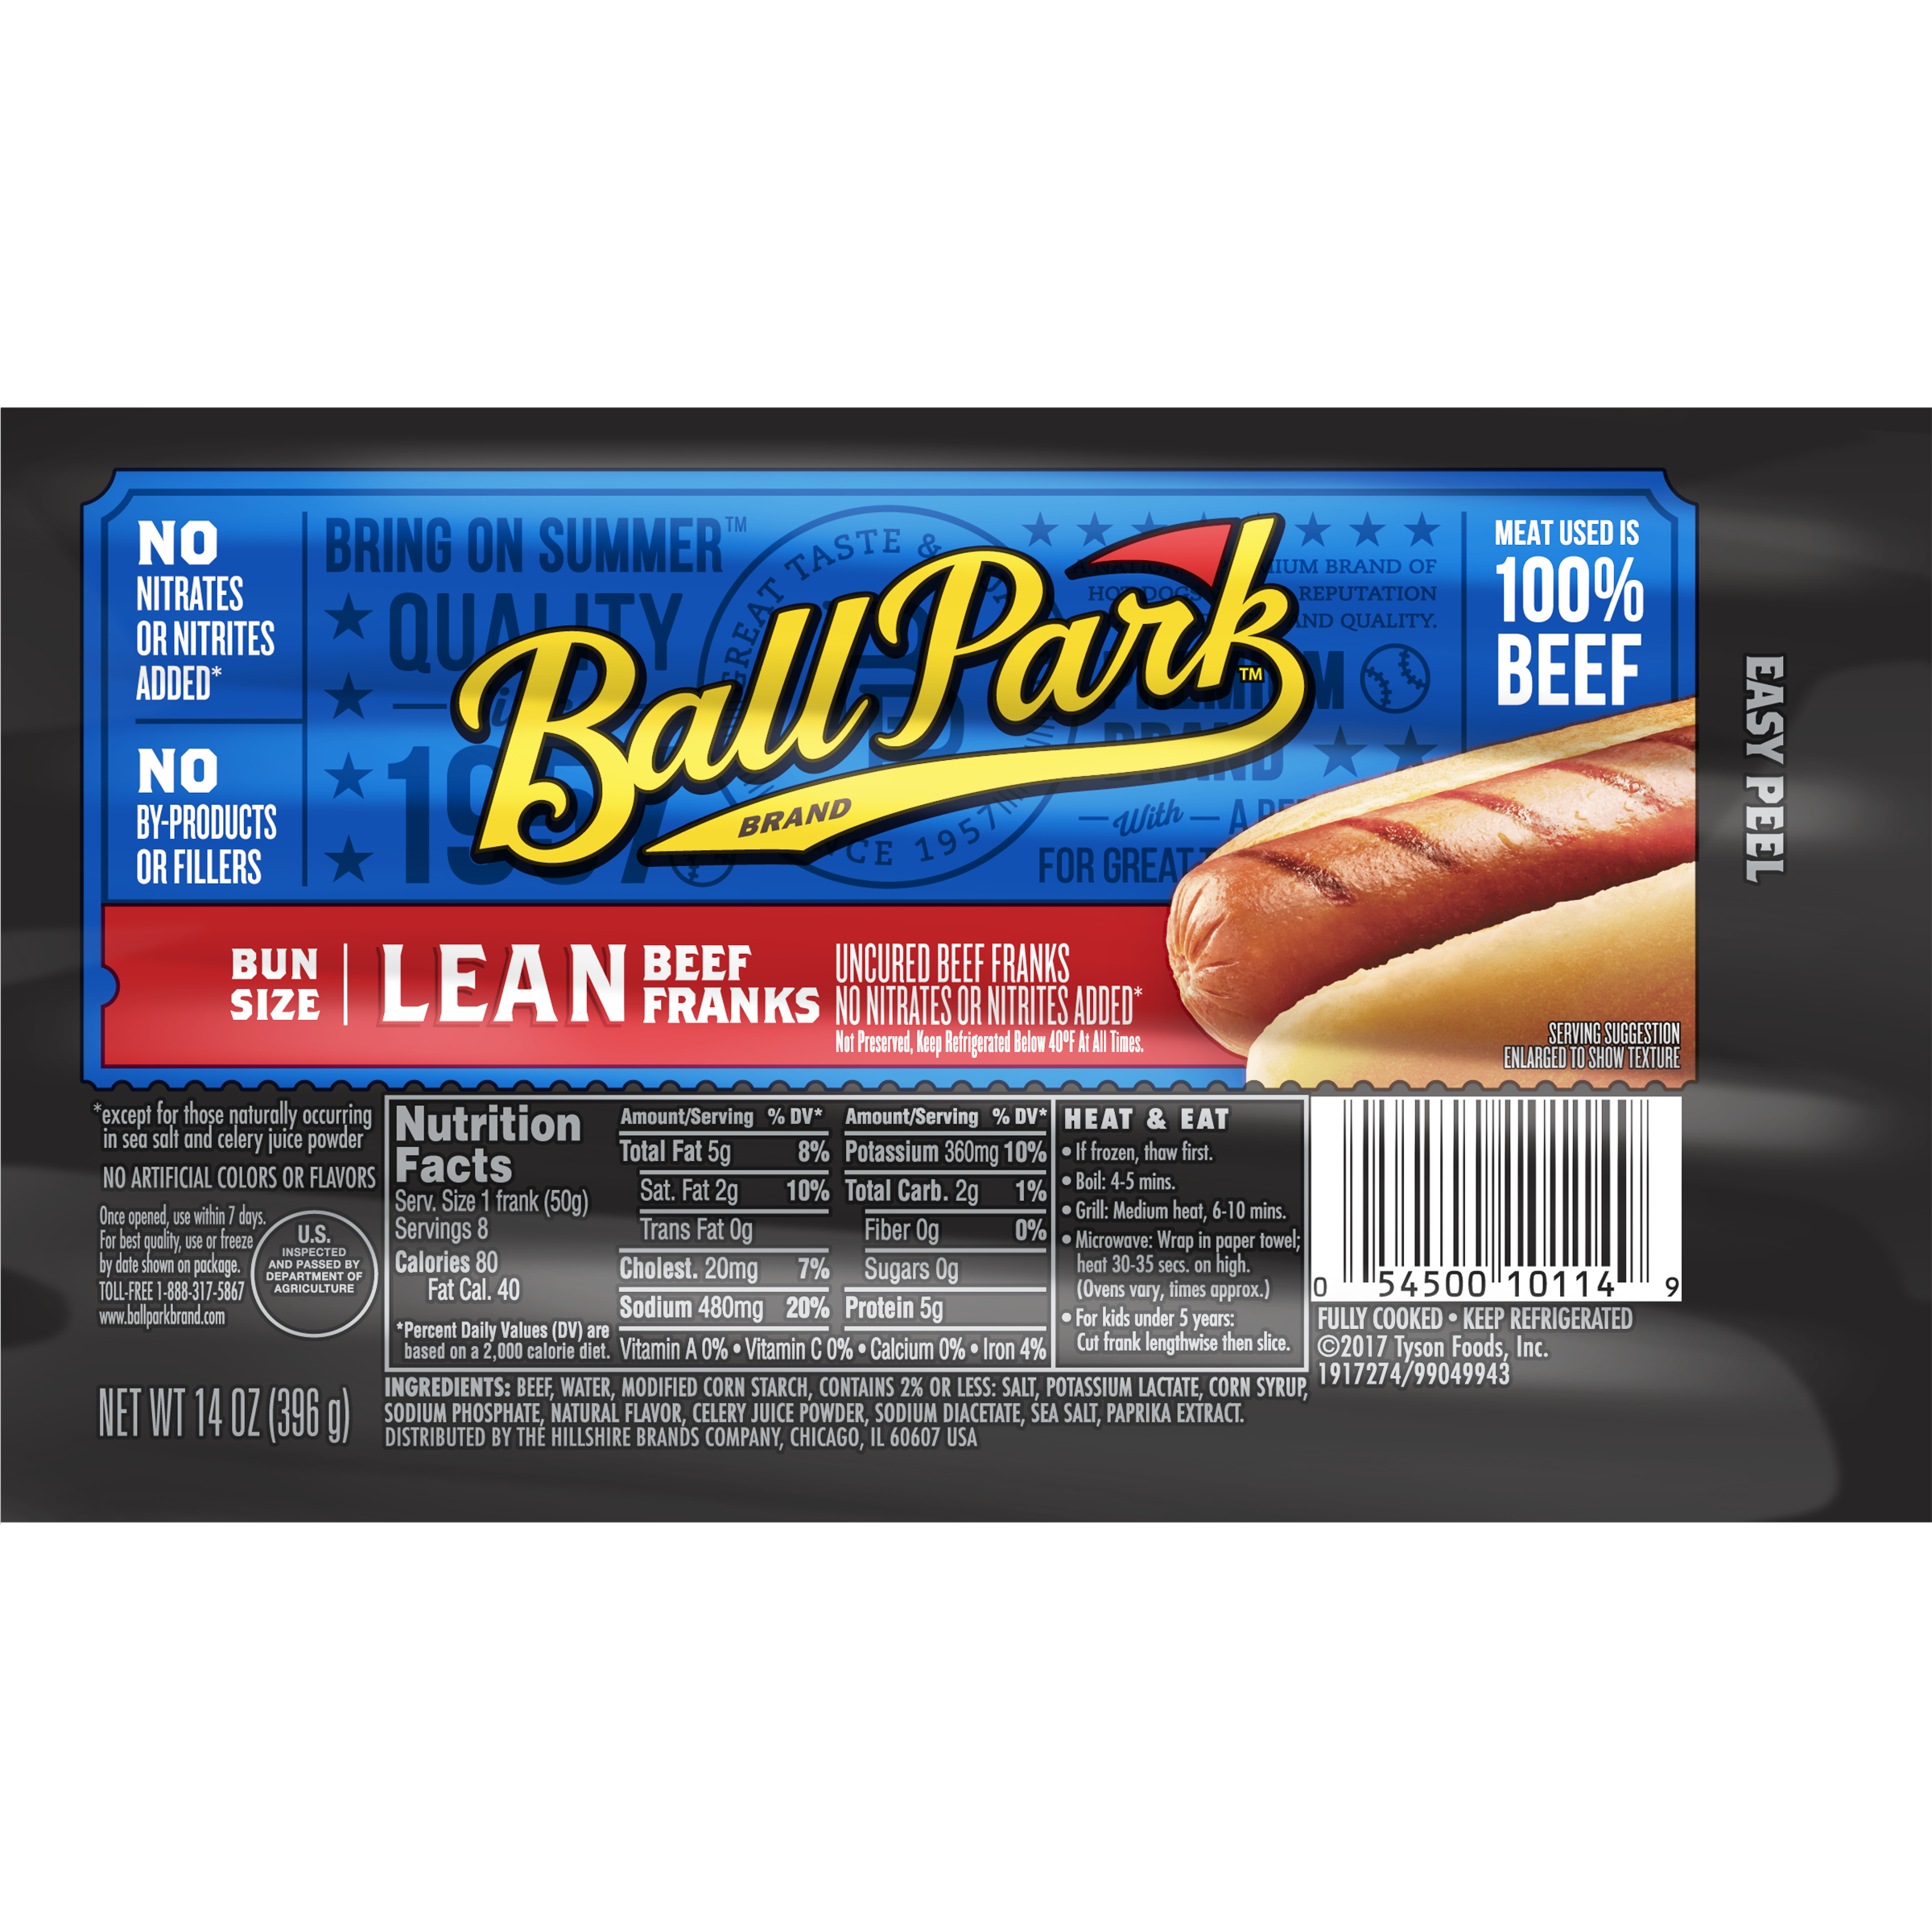 Ball Park® Lean Beef Franks, Original Length, 8 Count